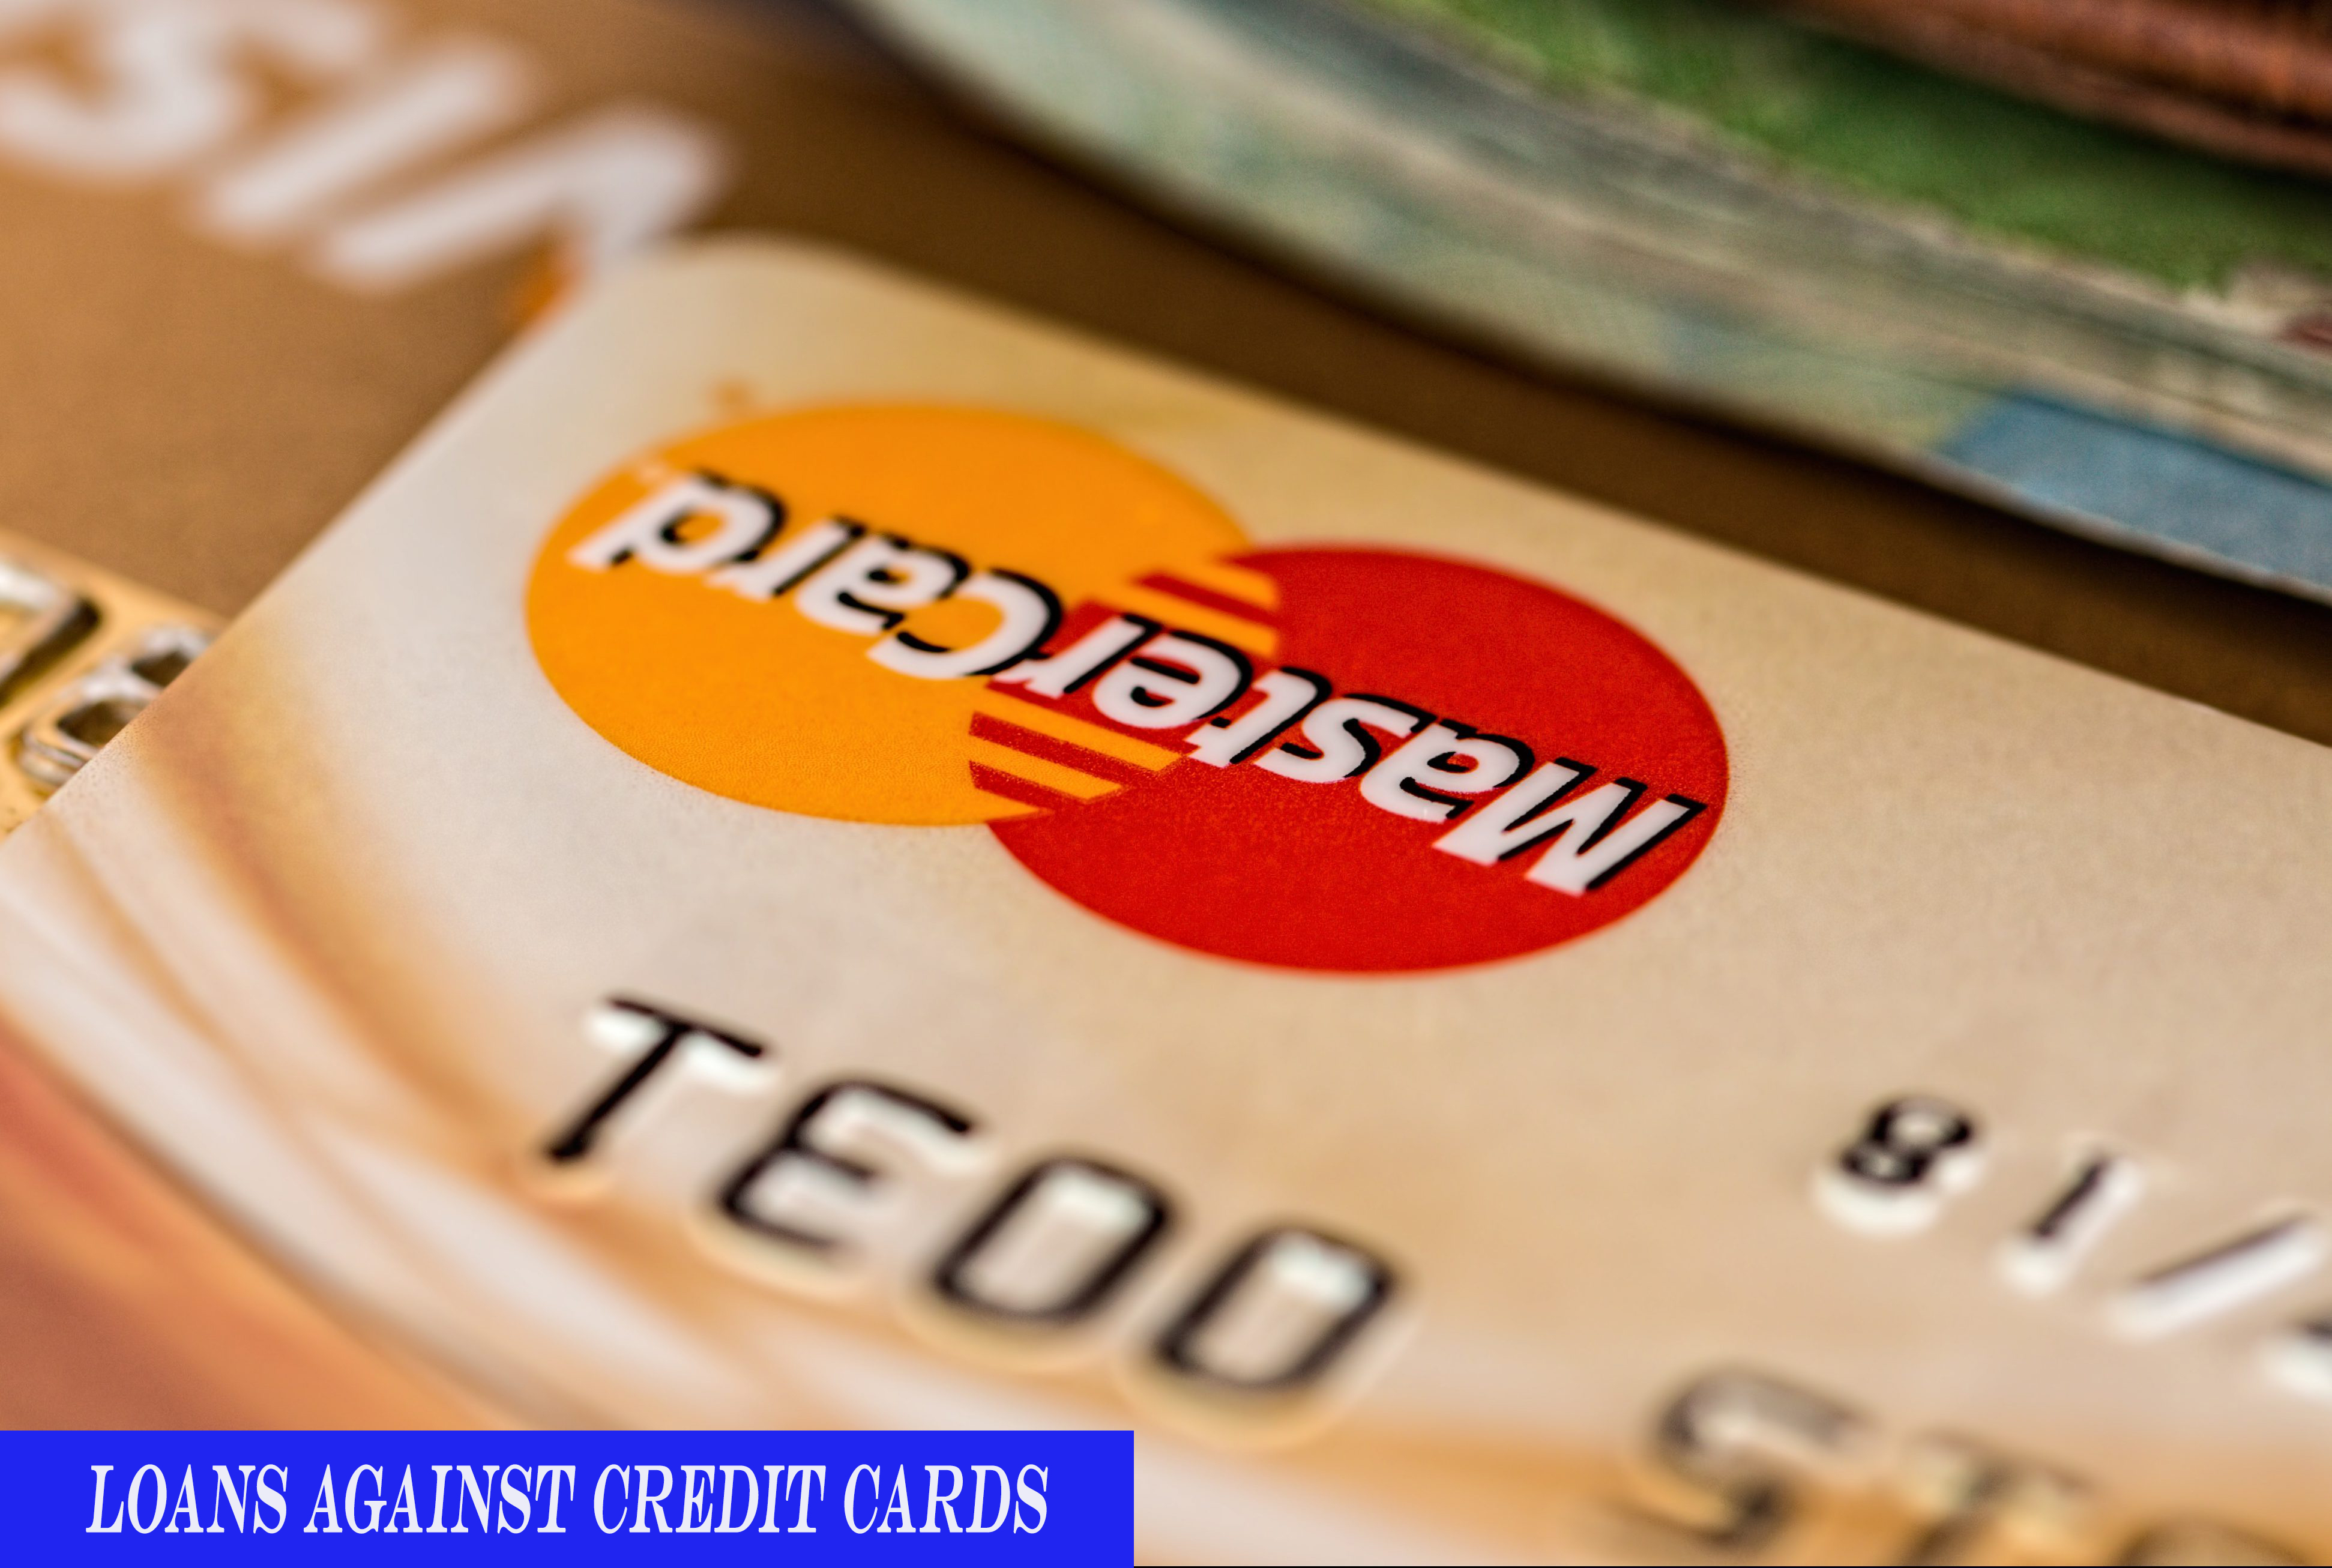 credit-cards-loan.jpg (3885×2612)